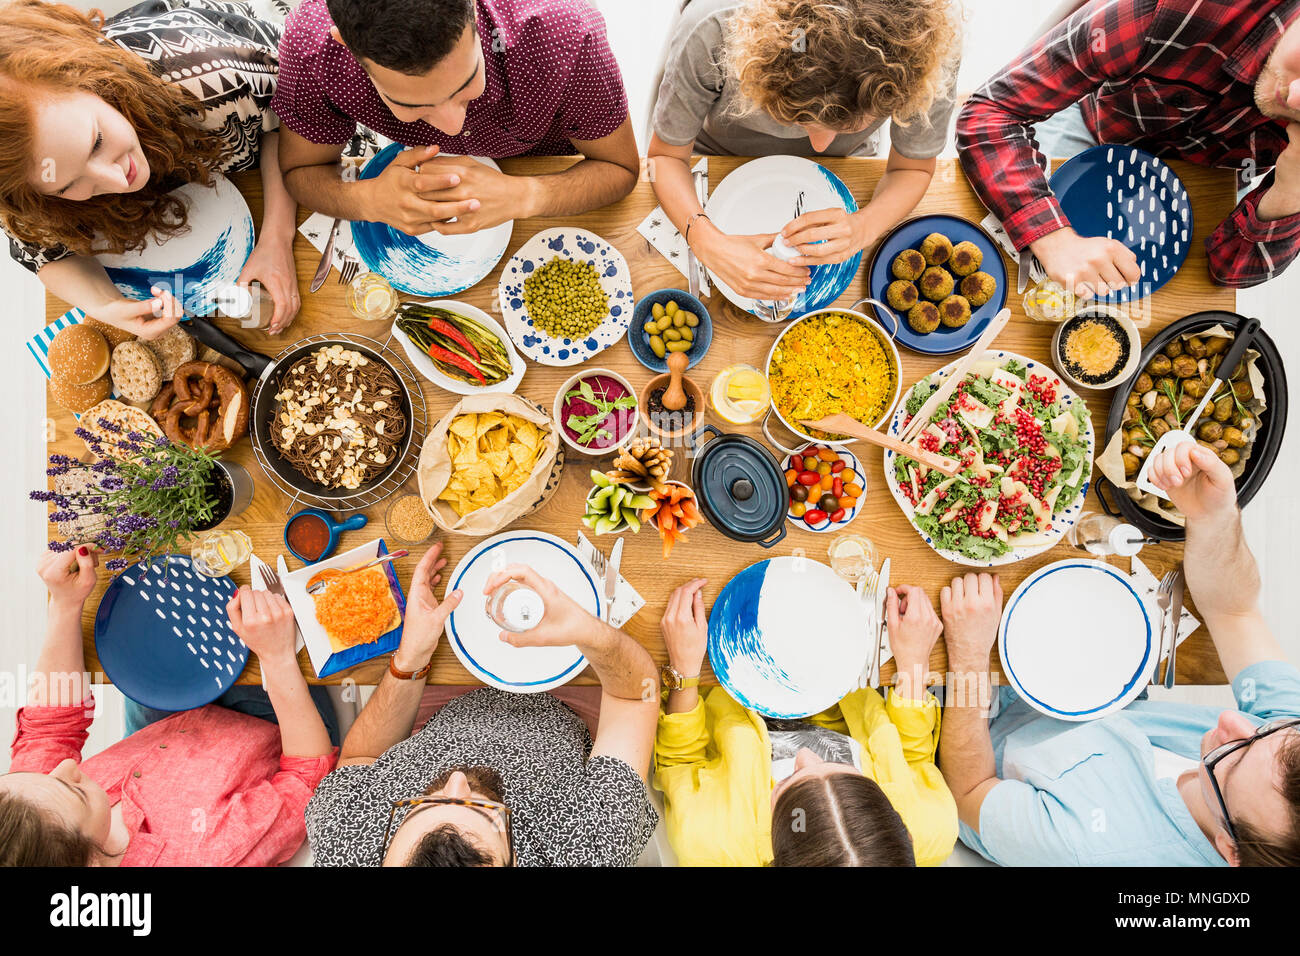 Red haired woman and her friends enjoy vege meeting with healthy food Stock Photo